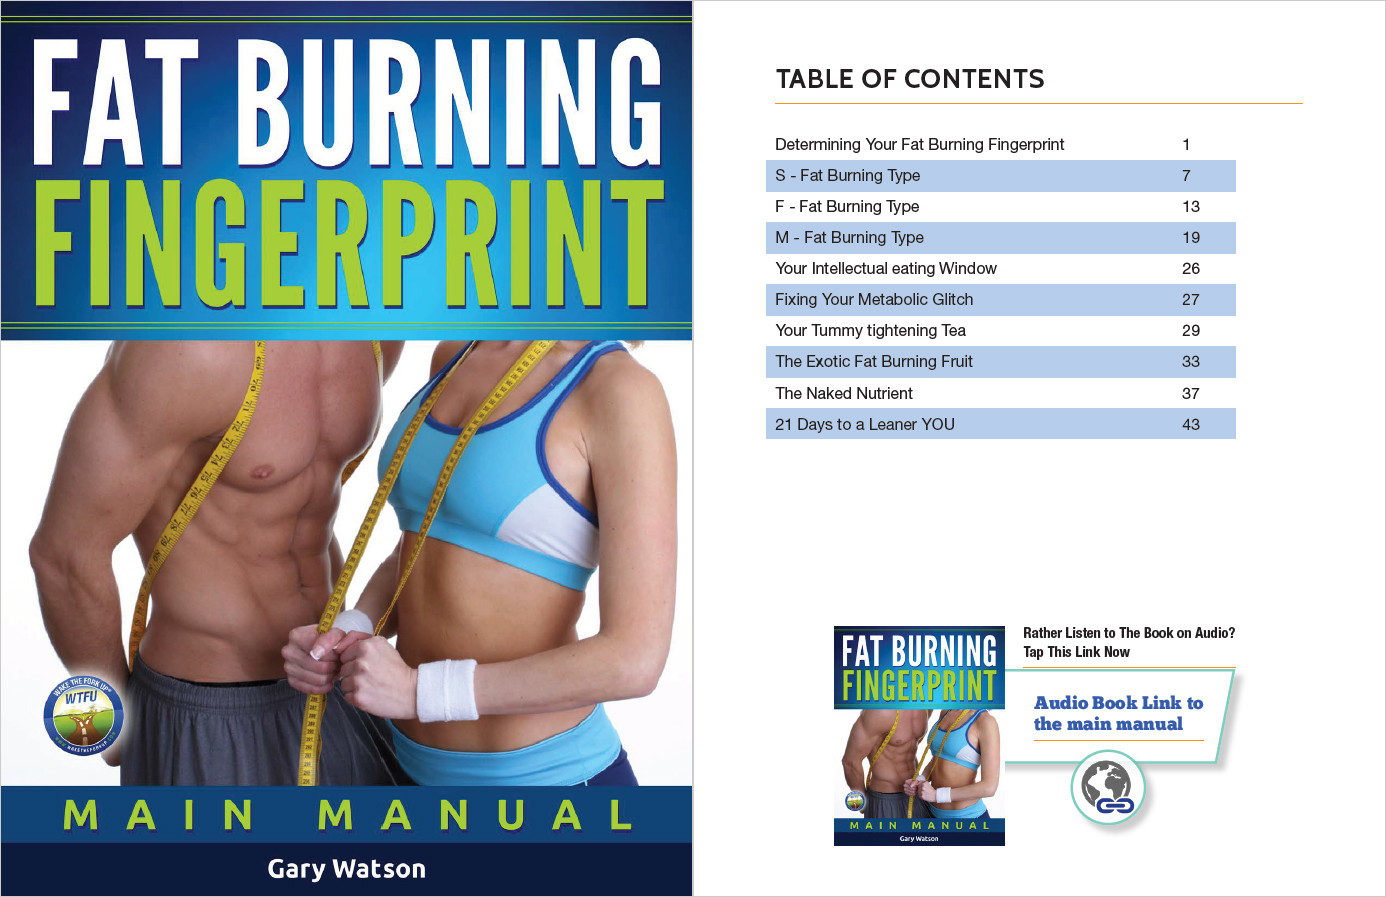 Fat Burning Fingerprint Table of Contents